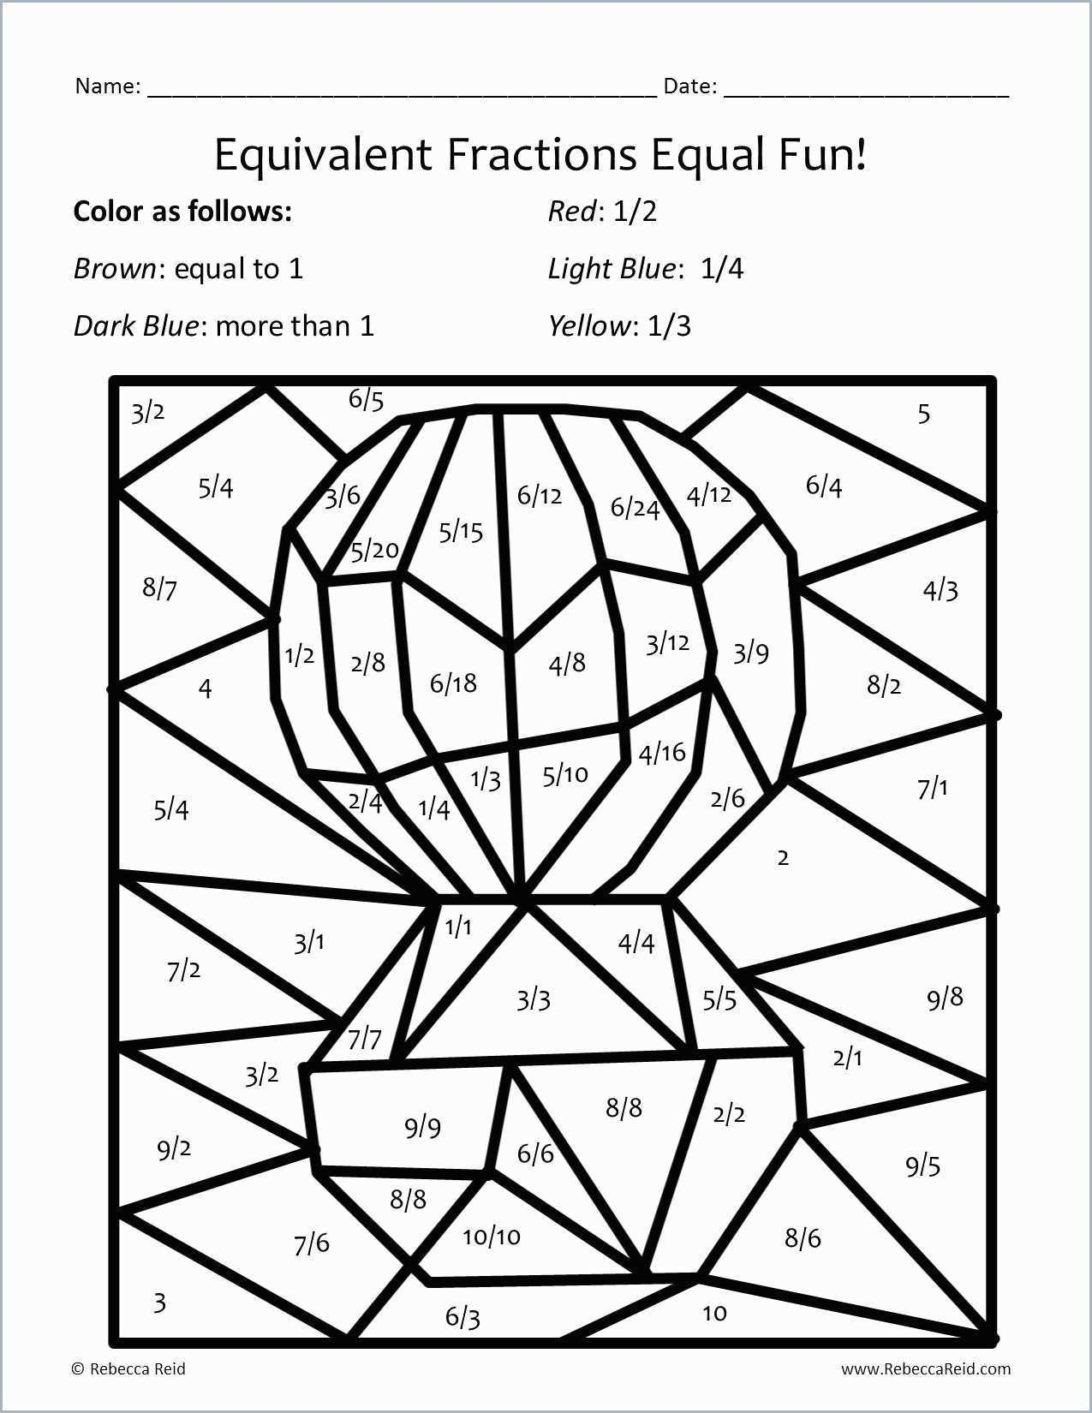 Coloring Worksheets For 3rd Grade Top 14 Awesome Coloring Coloringages Stunning Math Gr Math Coloring Worksheets Christmas Math Worksheets Fractions Worksheets [ 1413 x 1092 Pixel ]